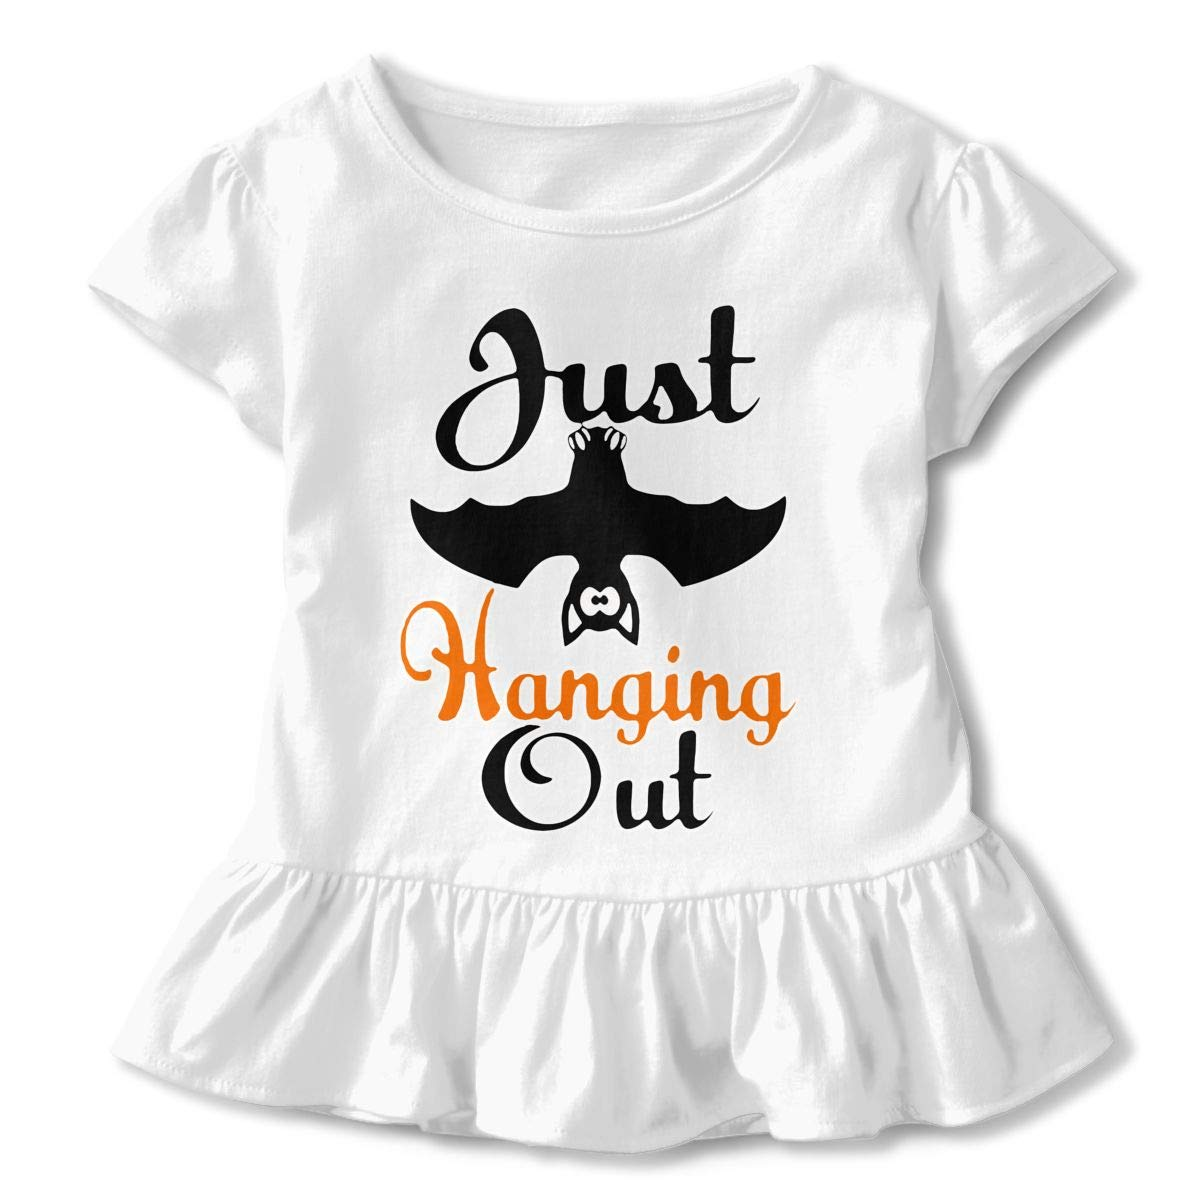 Halloween Just Hanging Out Baby Skirts Stylish Kids T Shirt Dress Short Sleeve Flounces Outfits